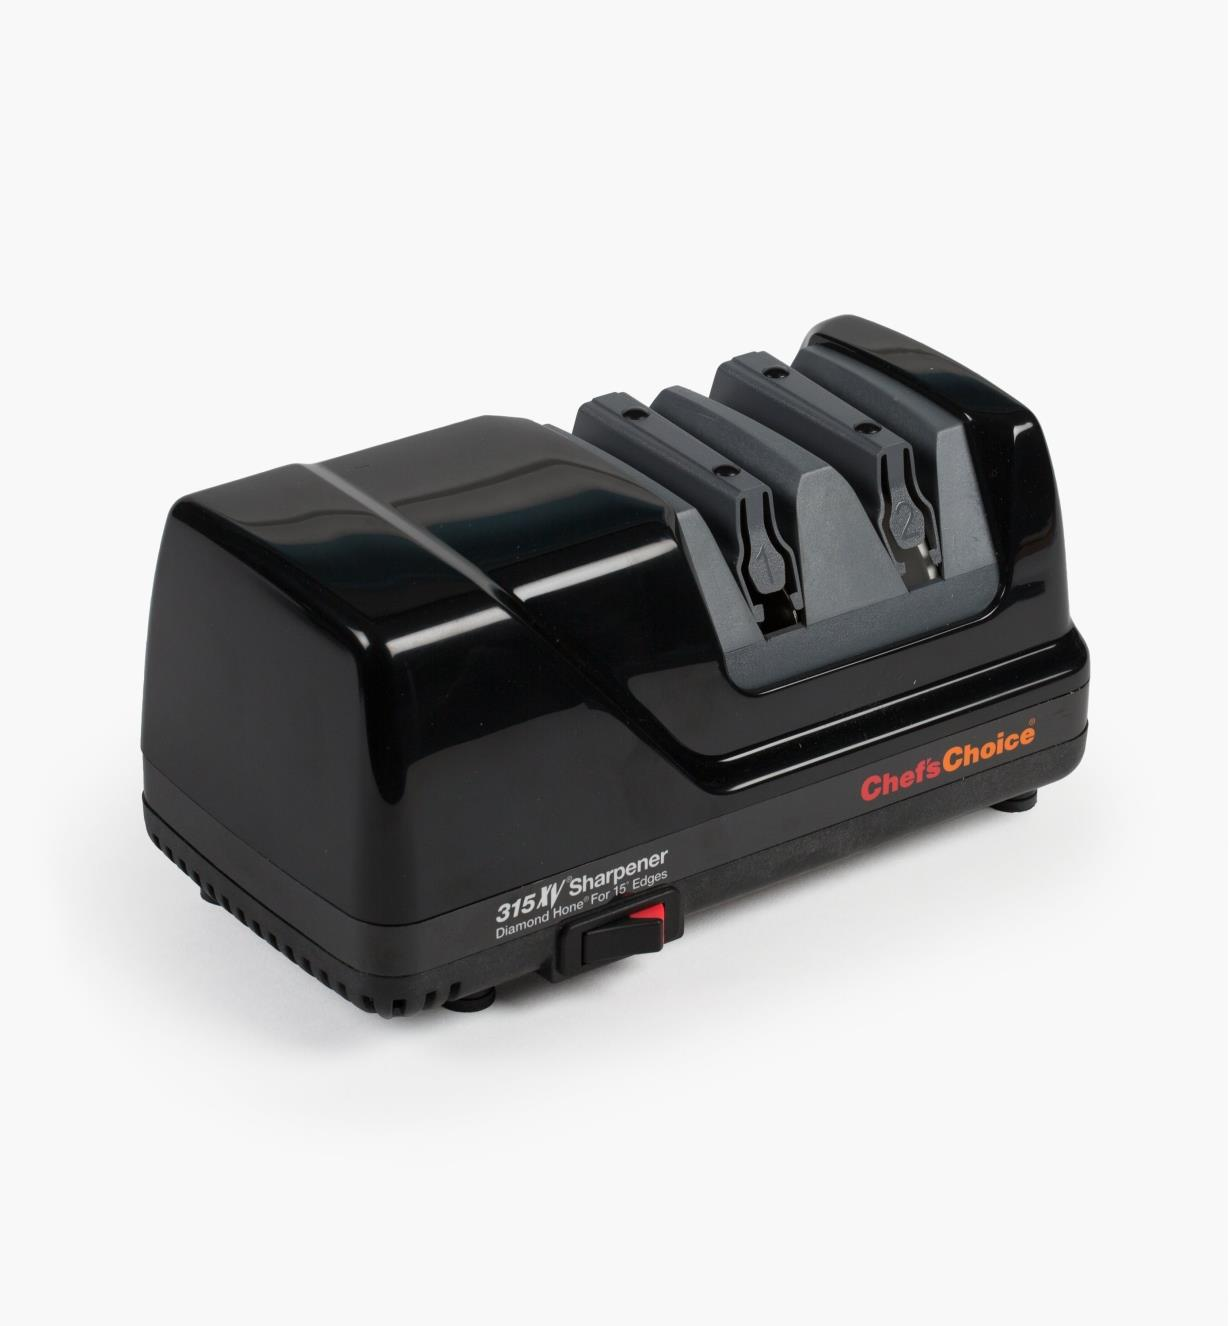 70M4605 - Chef'sChoice 15° Knife Sharpener, Model 315